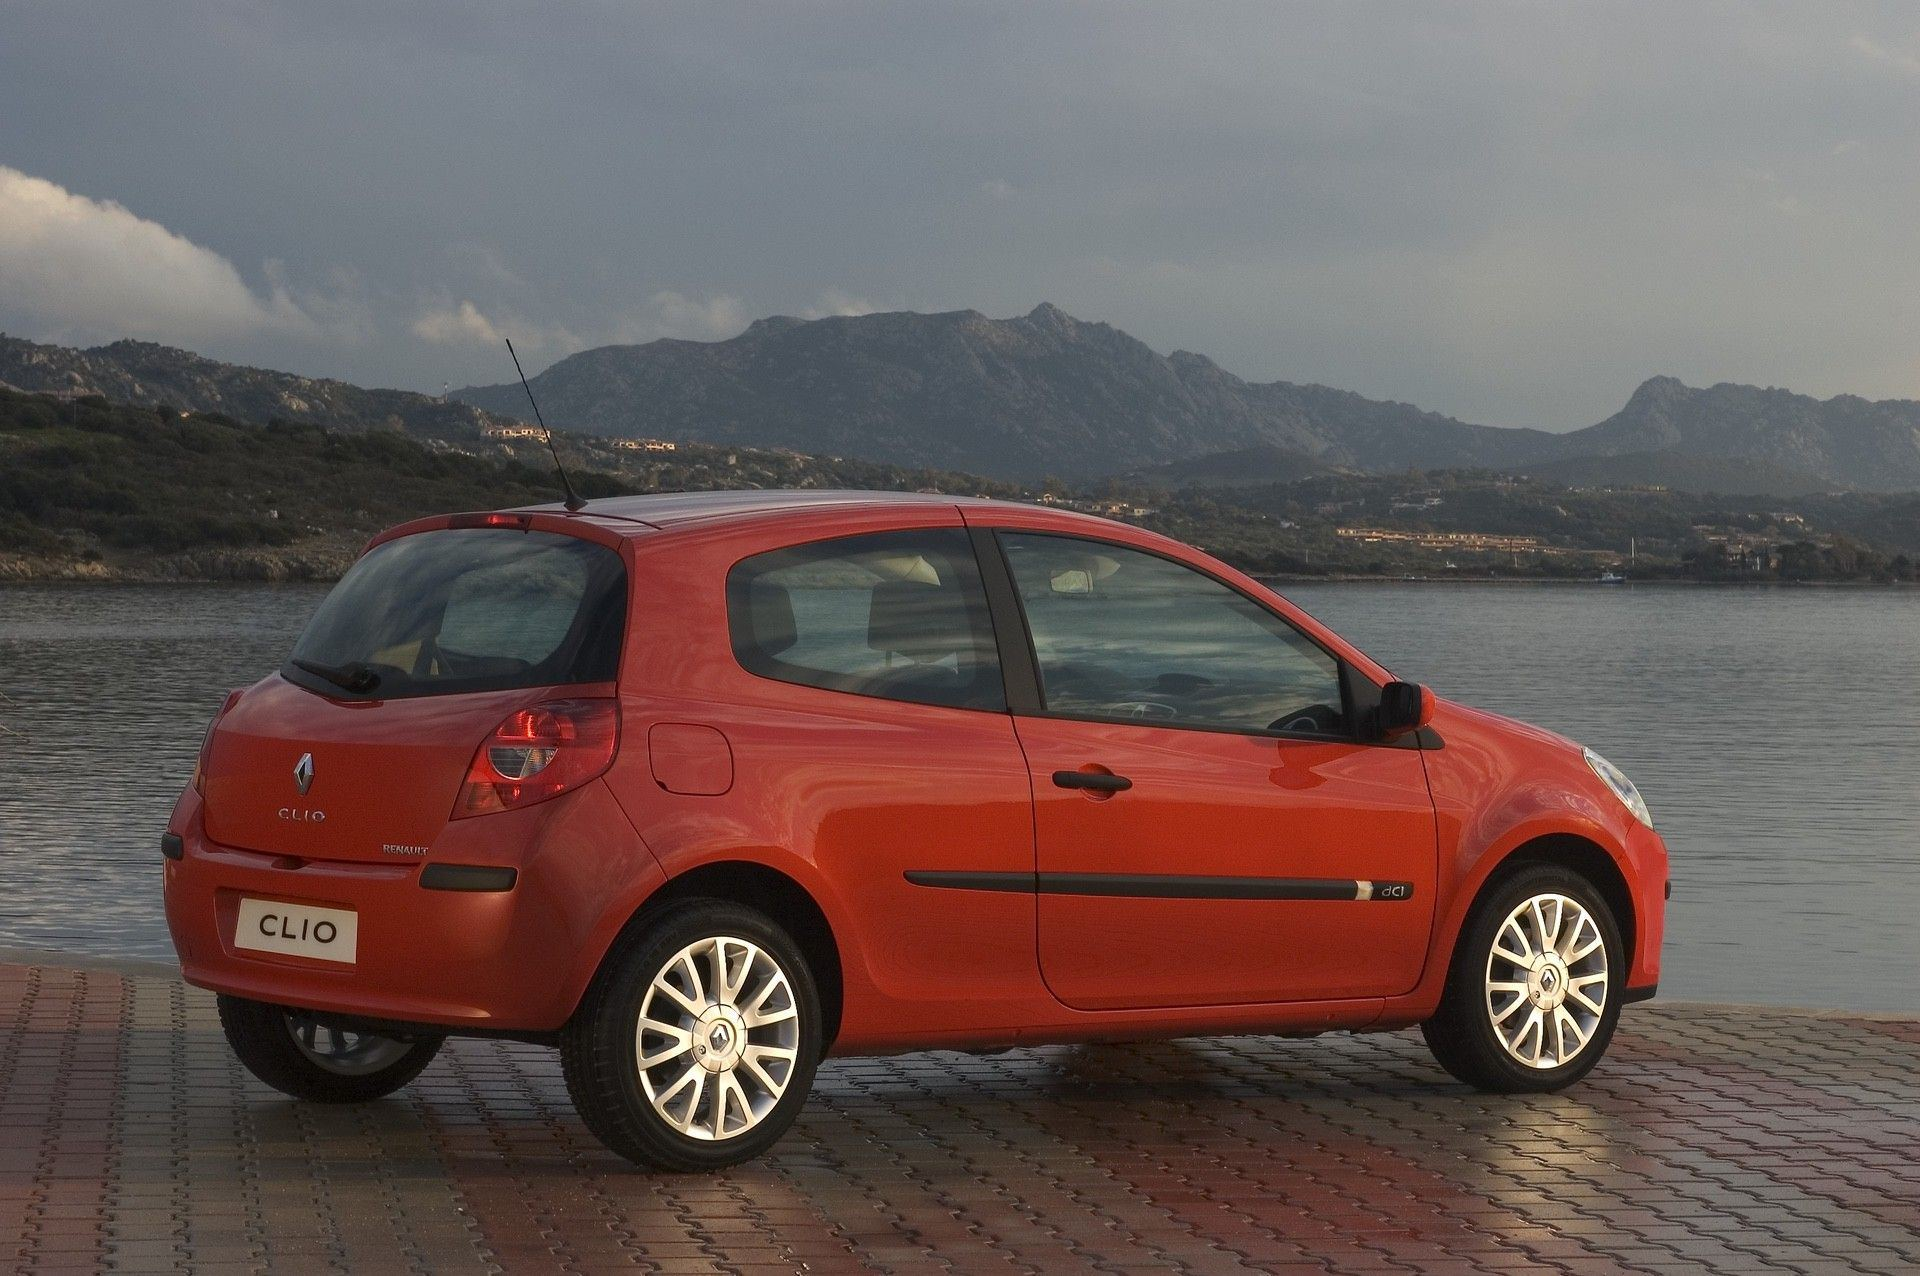 2020-30-years-of-Renault-CLIO-Renault-CLIO-III-2005-2012-8